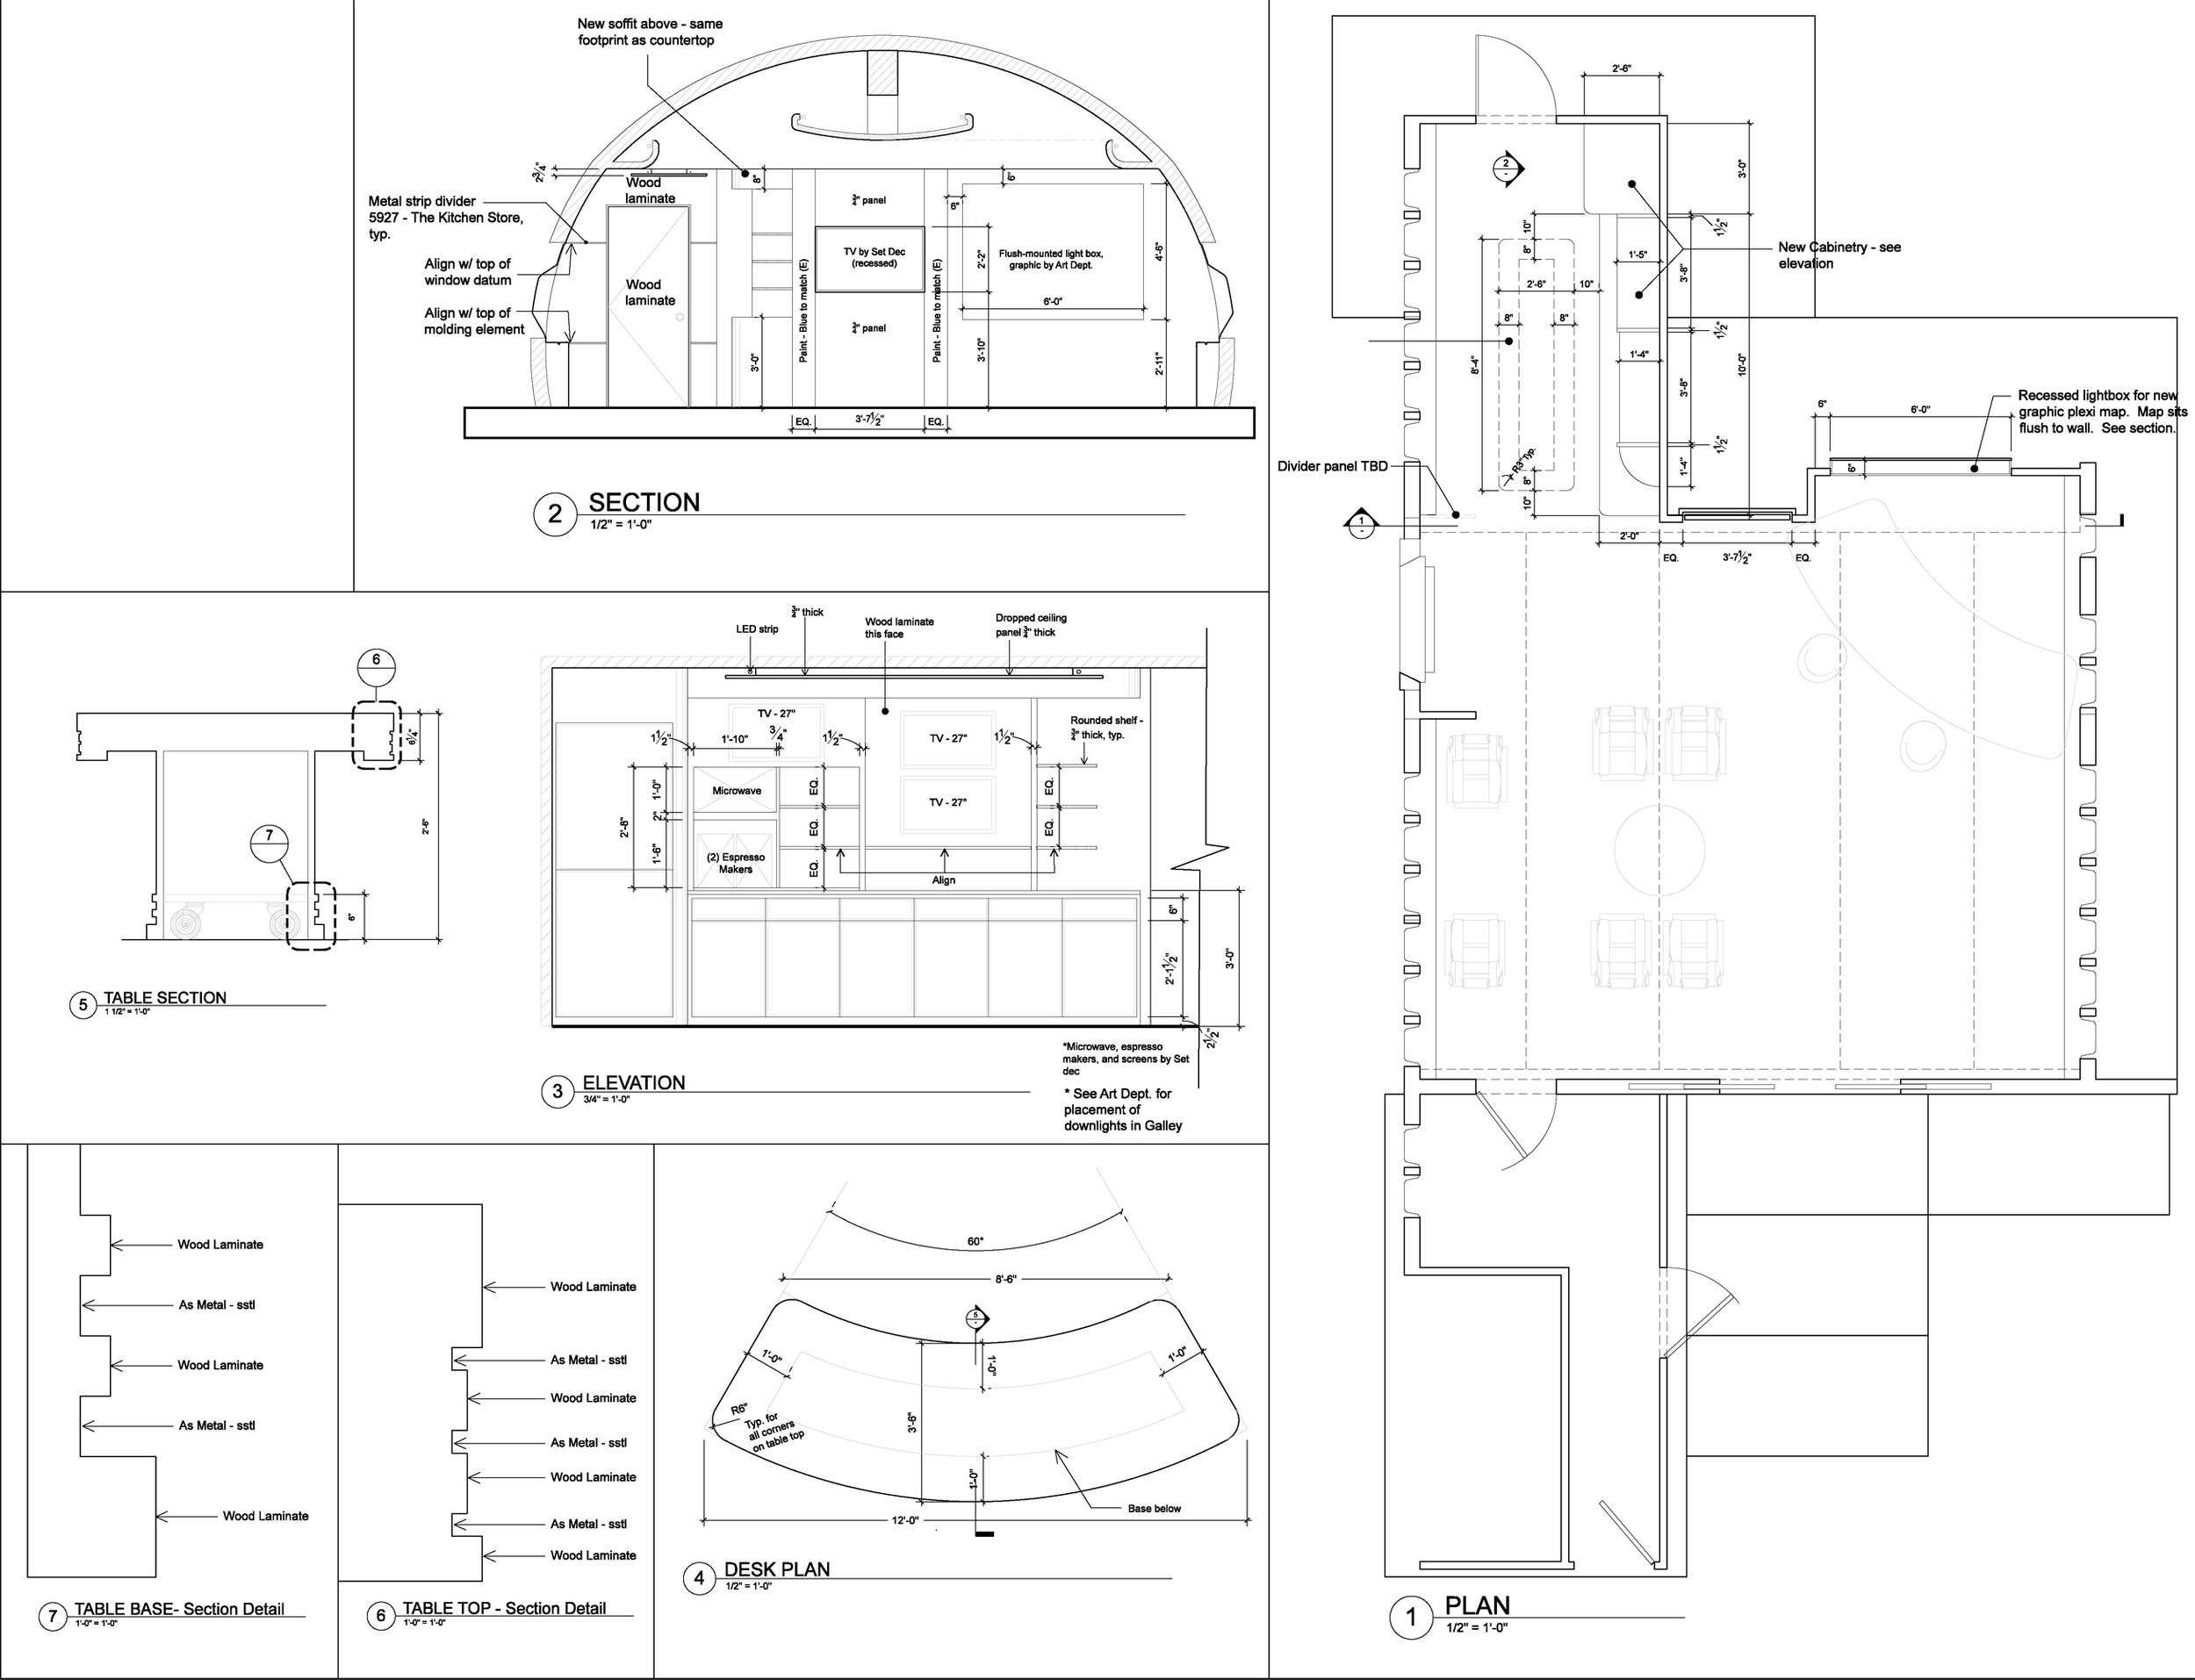 01_PLANE Galley_PLAN.jpg